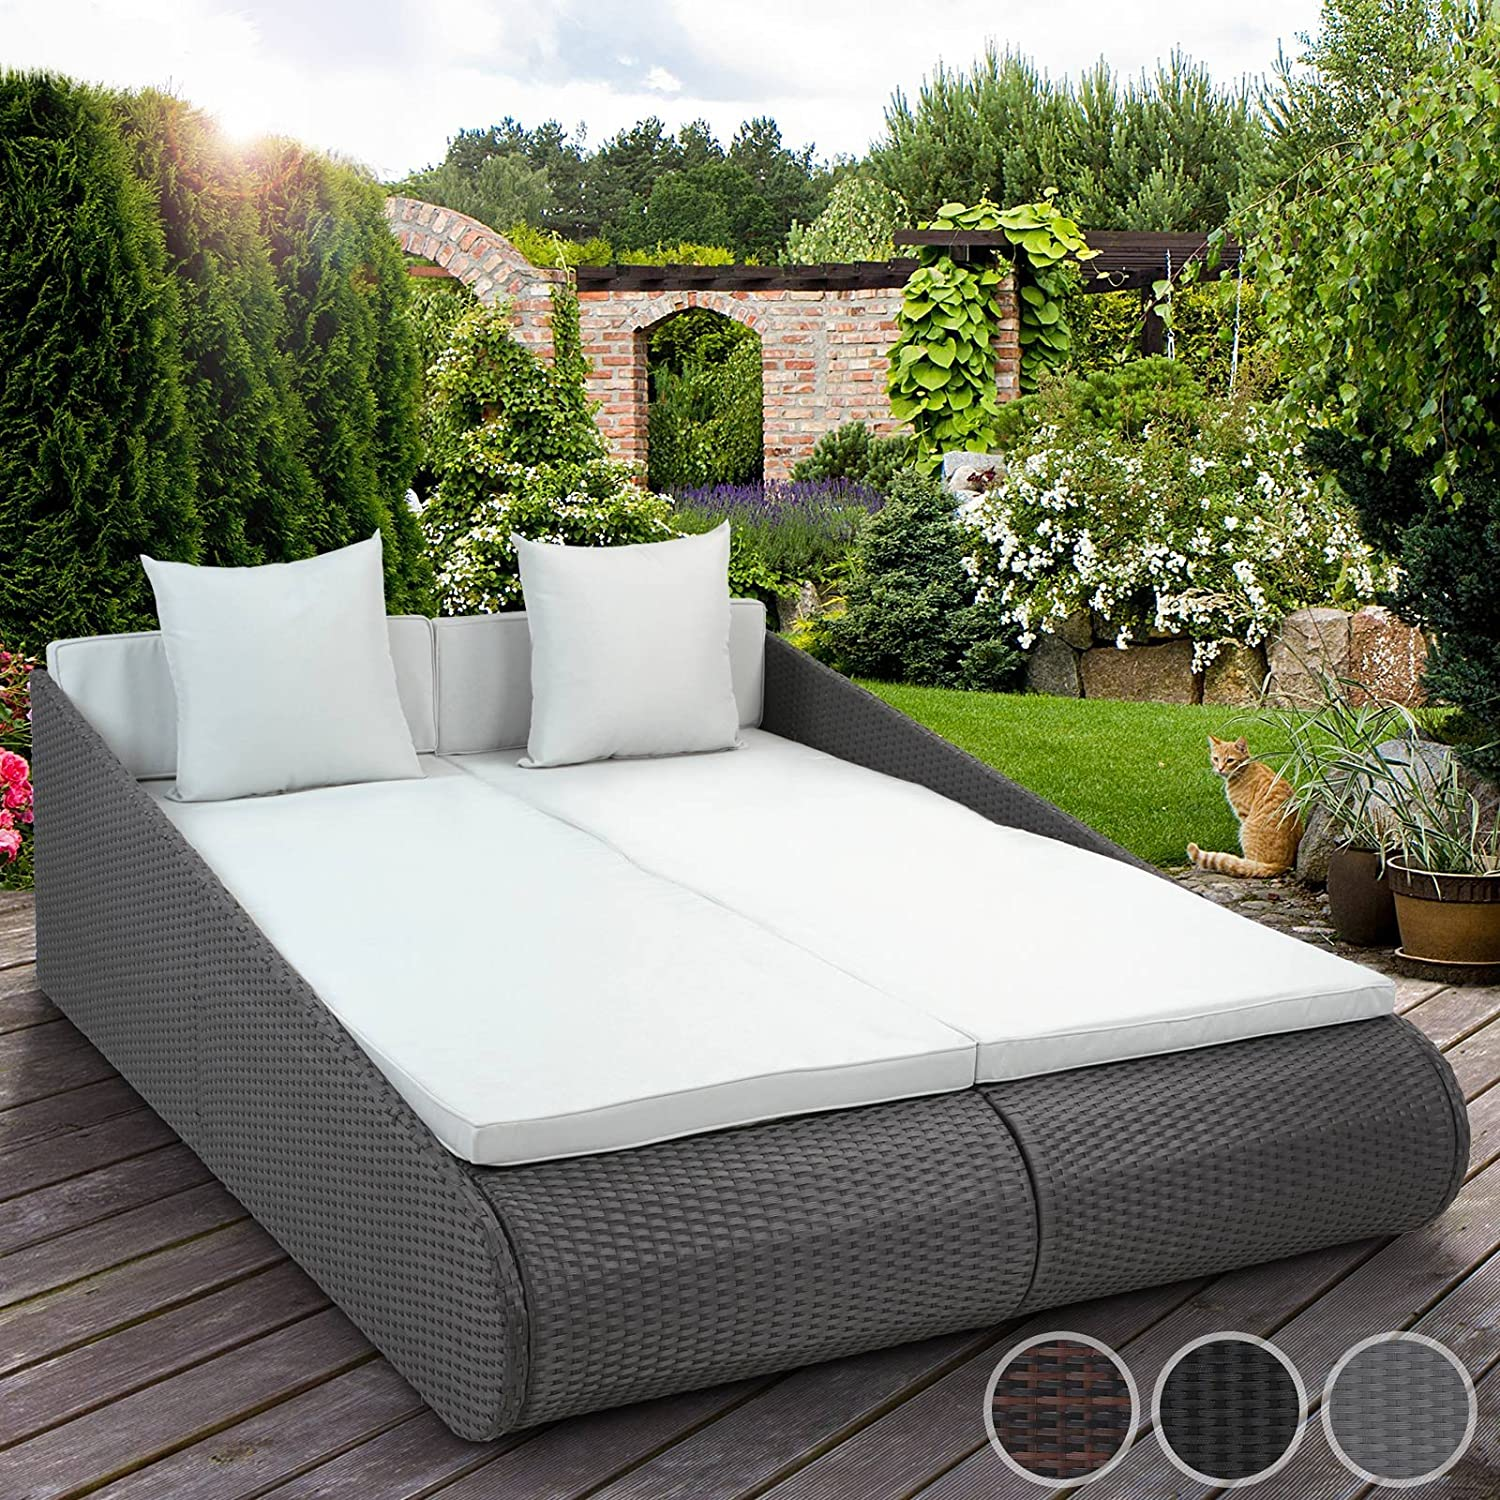 miadomodo sonnenliege lounge gartenm bel sitzpolster gartencouch aus polyrattan mit farbwahl g nstig. Black Bedroom Furniture Sets. Home Design Ideas